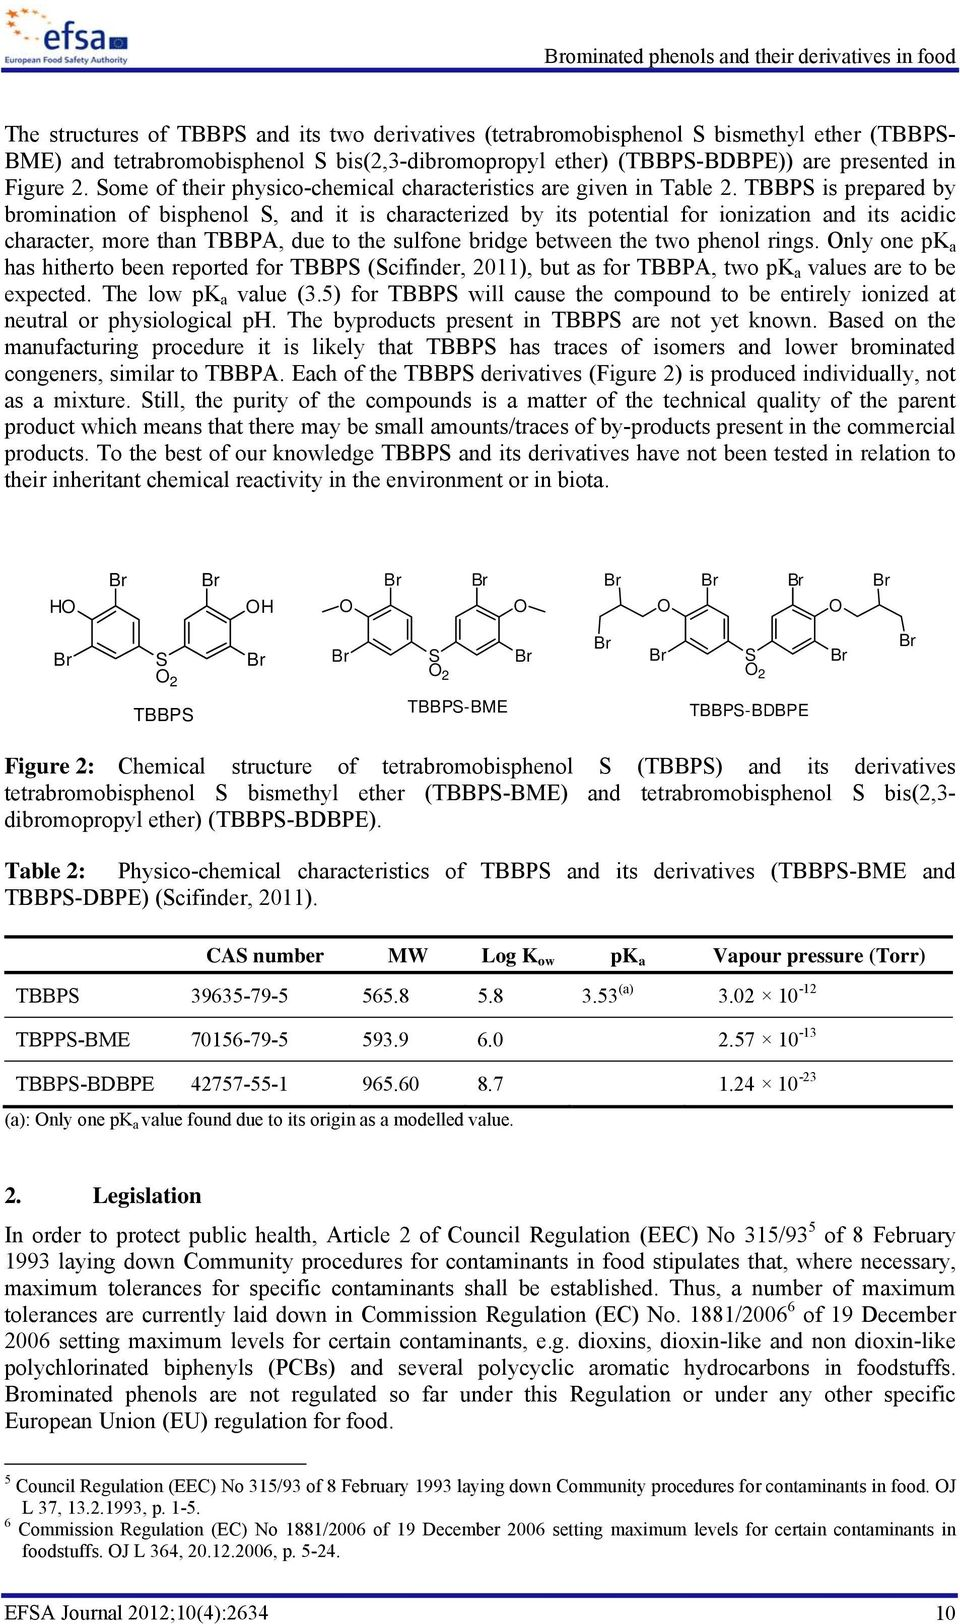 TBBPS is prepared by bromination of bisphenol S, and it is characterized by its potential for ionization and its acidic character, more than TBBPA, due to the sulfone bridge between the two phenol